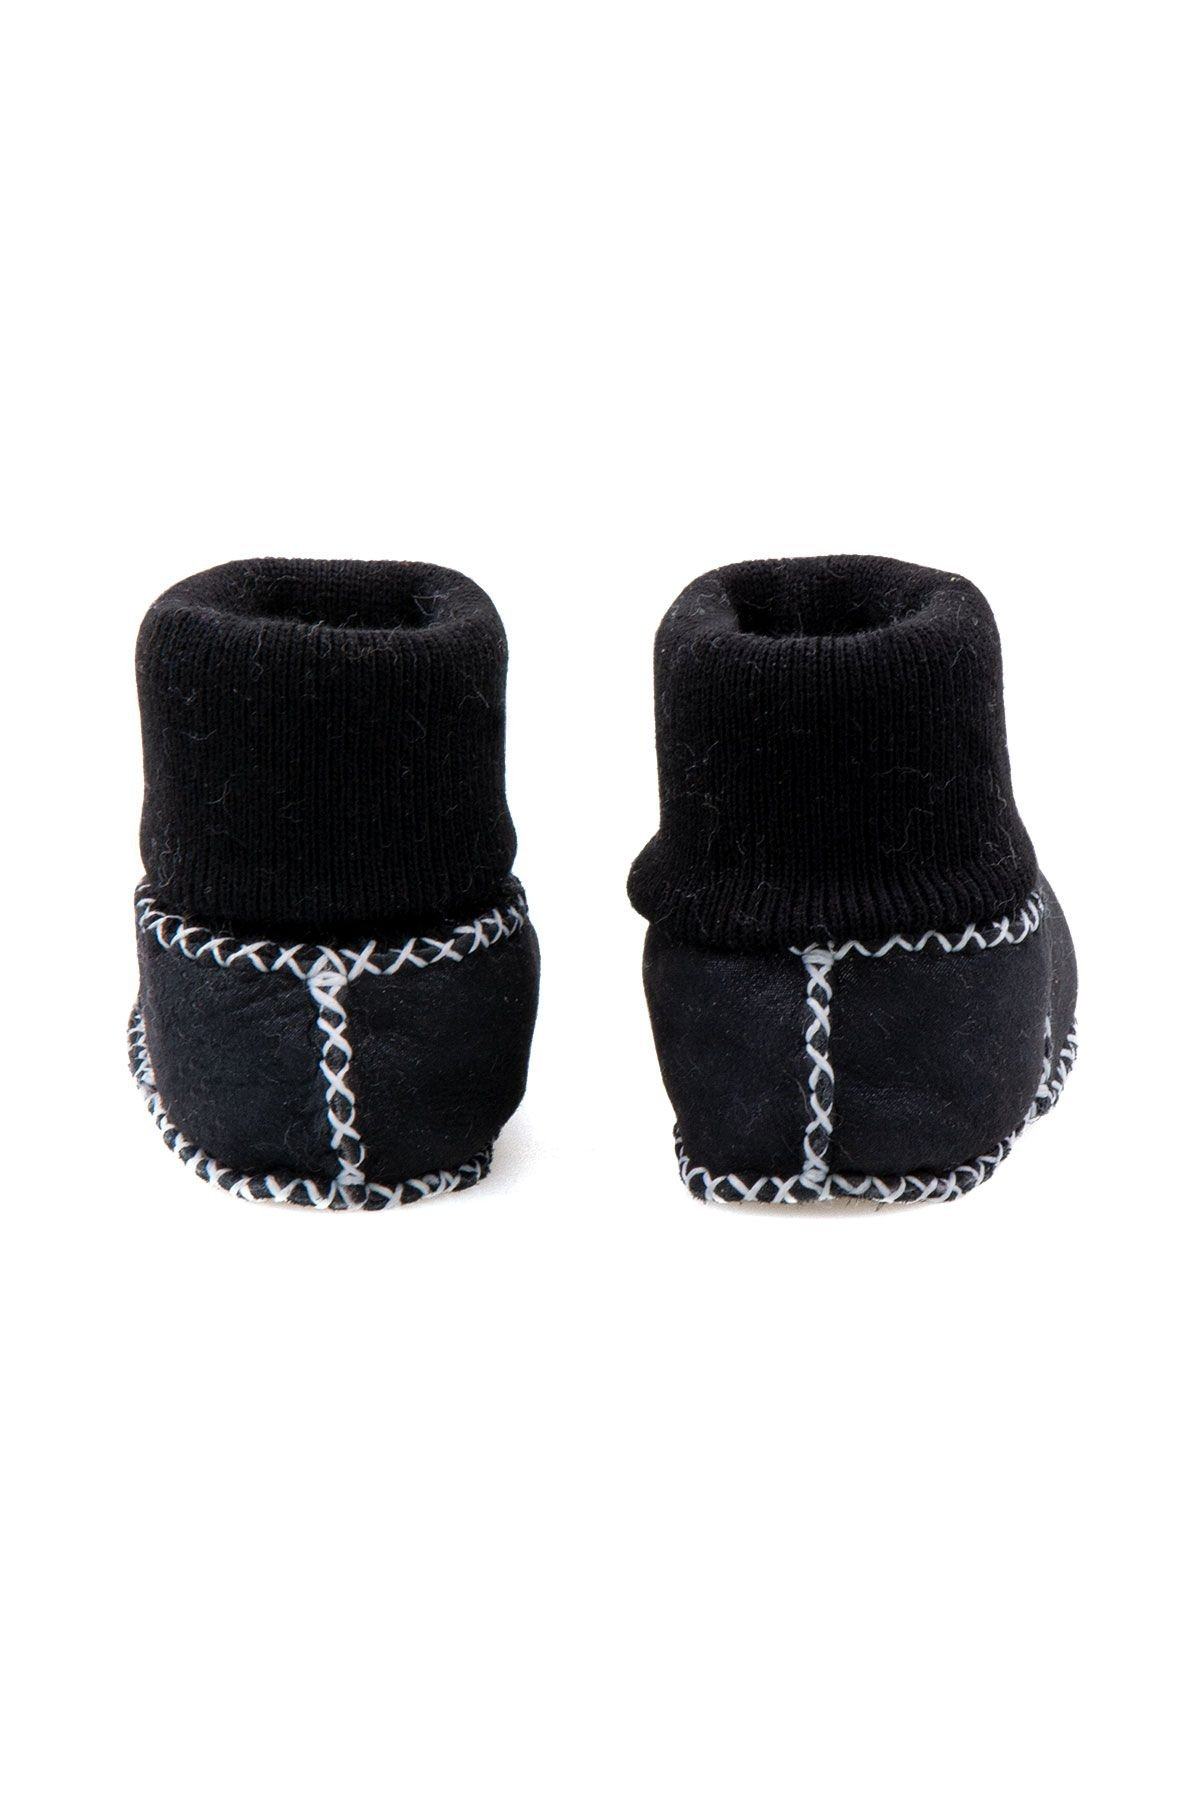 Pegia Shearling Baby's Booties With Socks 141112 Navy blue